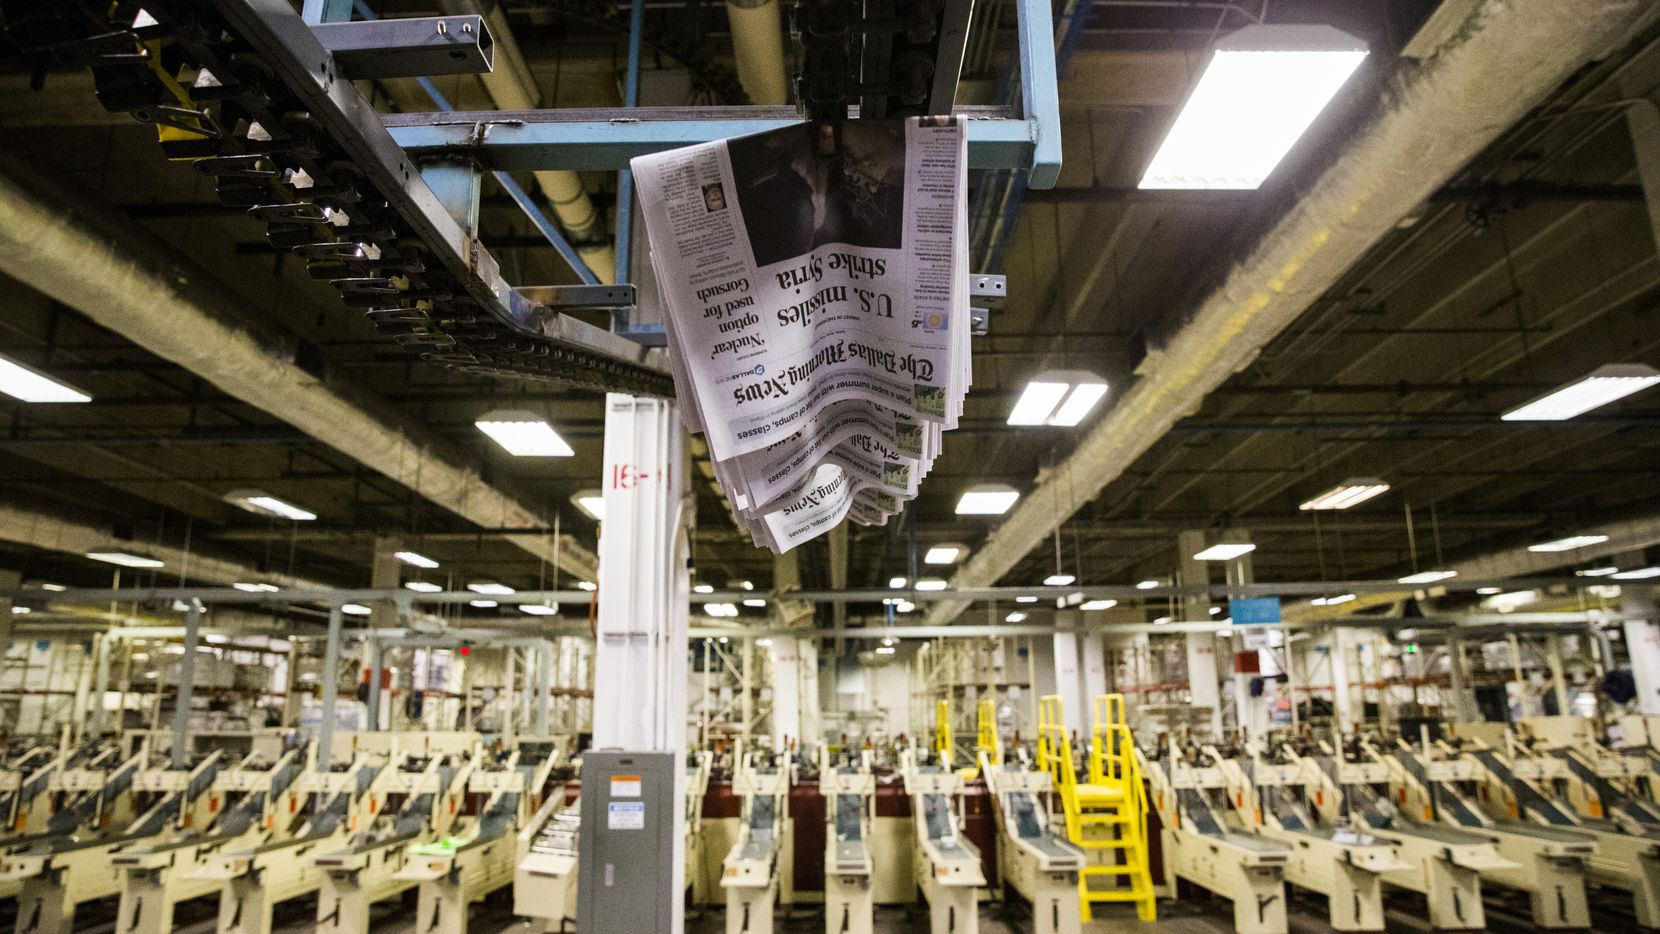 Copies of the Friday, April 7, 2017 issue of The Dallas Morning News newspapers move overhead on Thursday, April 6, 2017 at The Dallas Morning News' North Plant in Plano, Texas. (Ashley Landis/The Dallas Morning News)